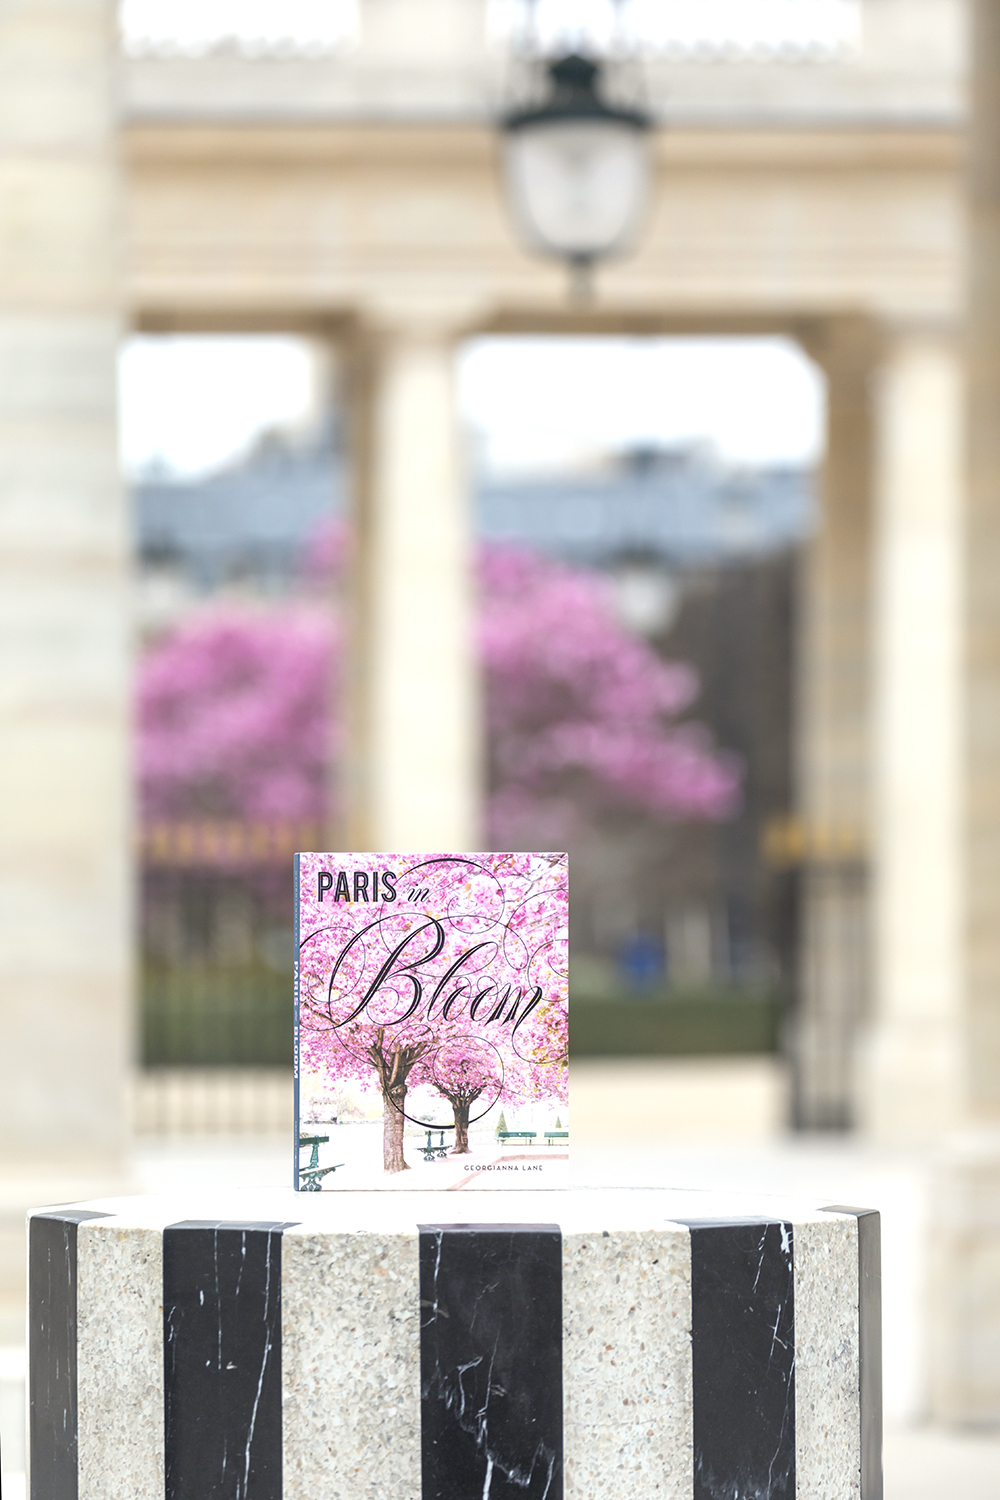 Paris in Bloom by Georgianna Lane at the Palais Royal, Paris, in Spring